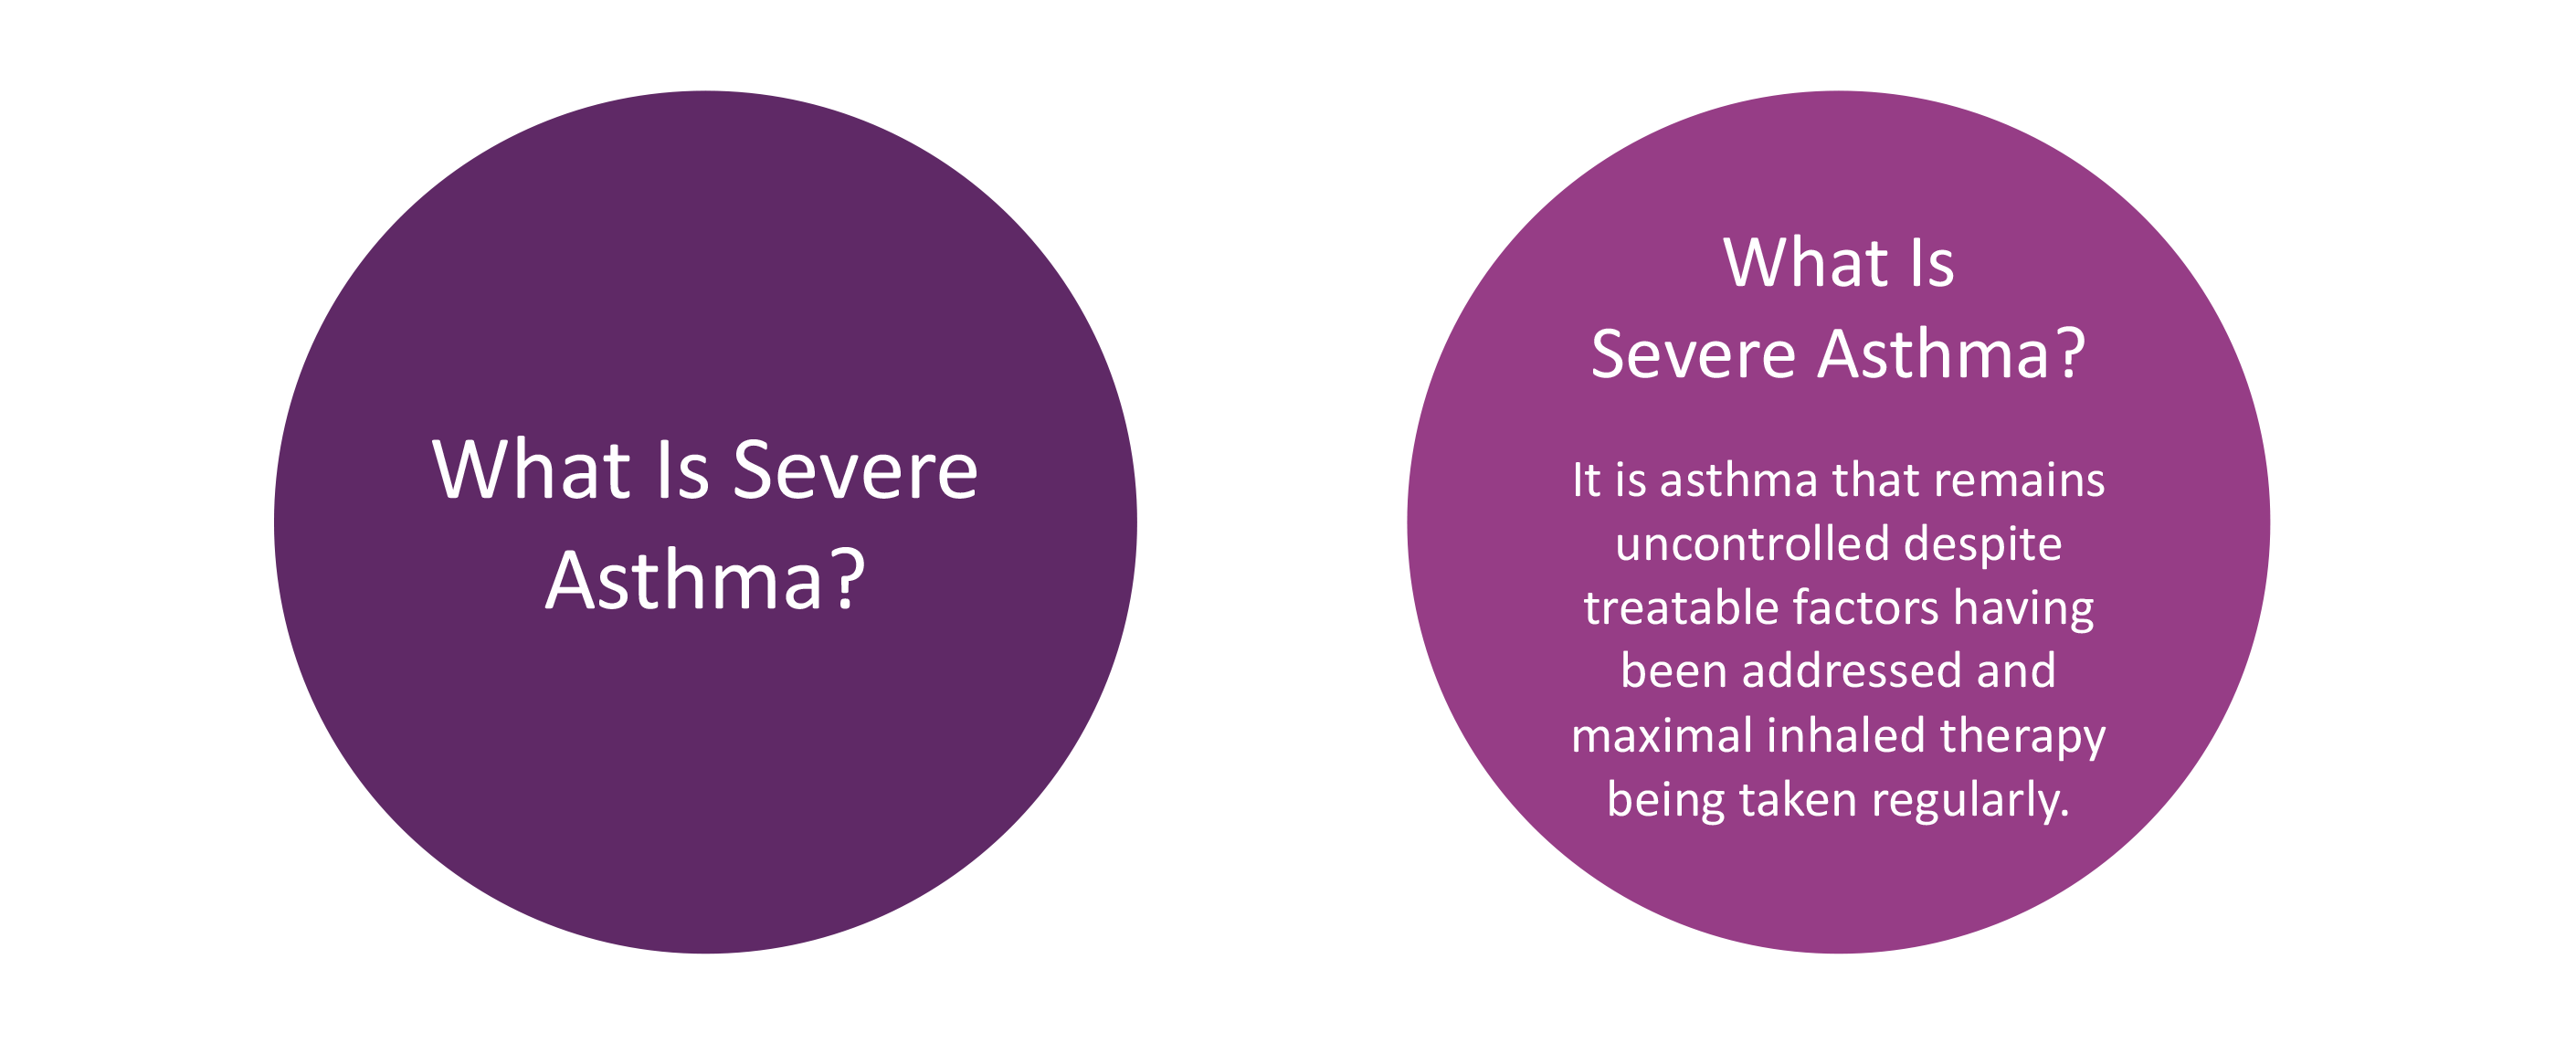 what is severe asthma intro infographic